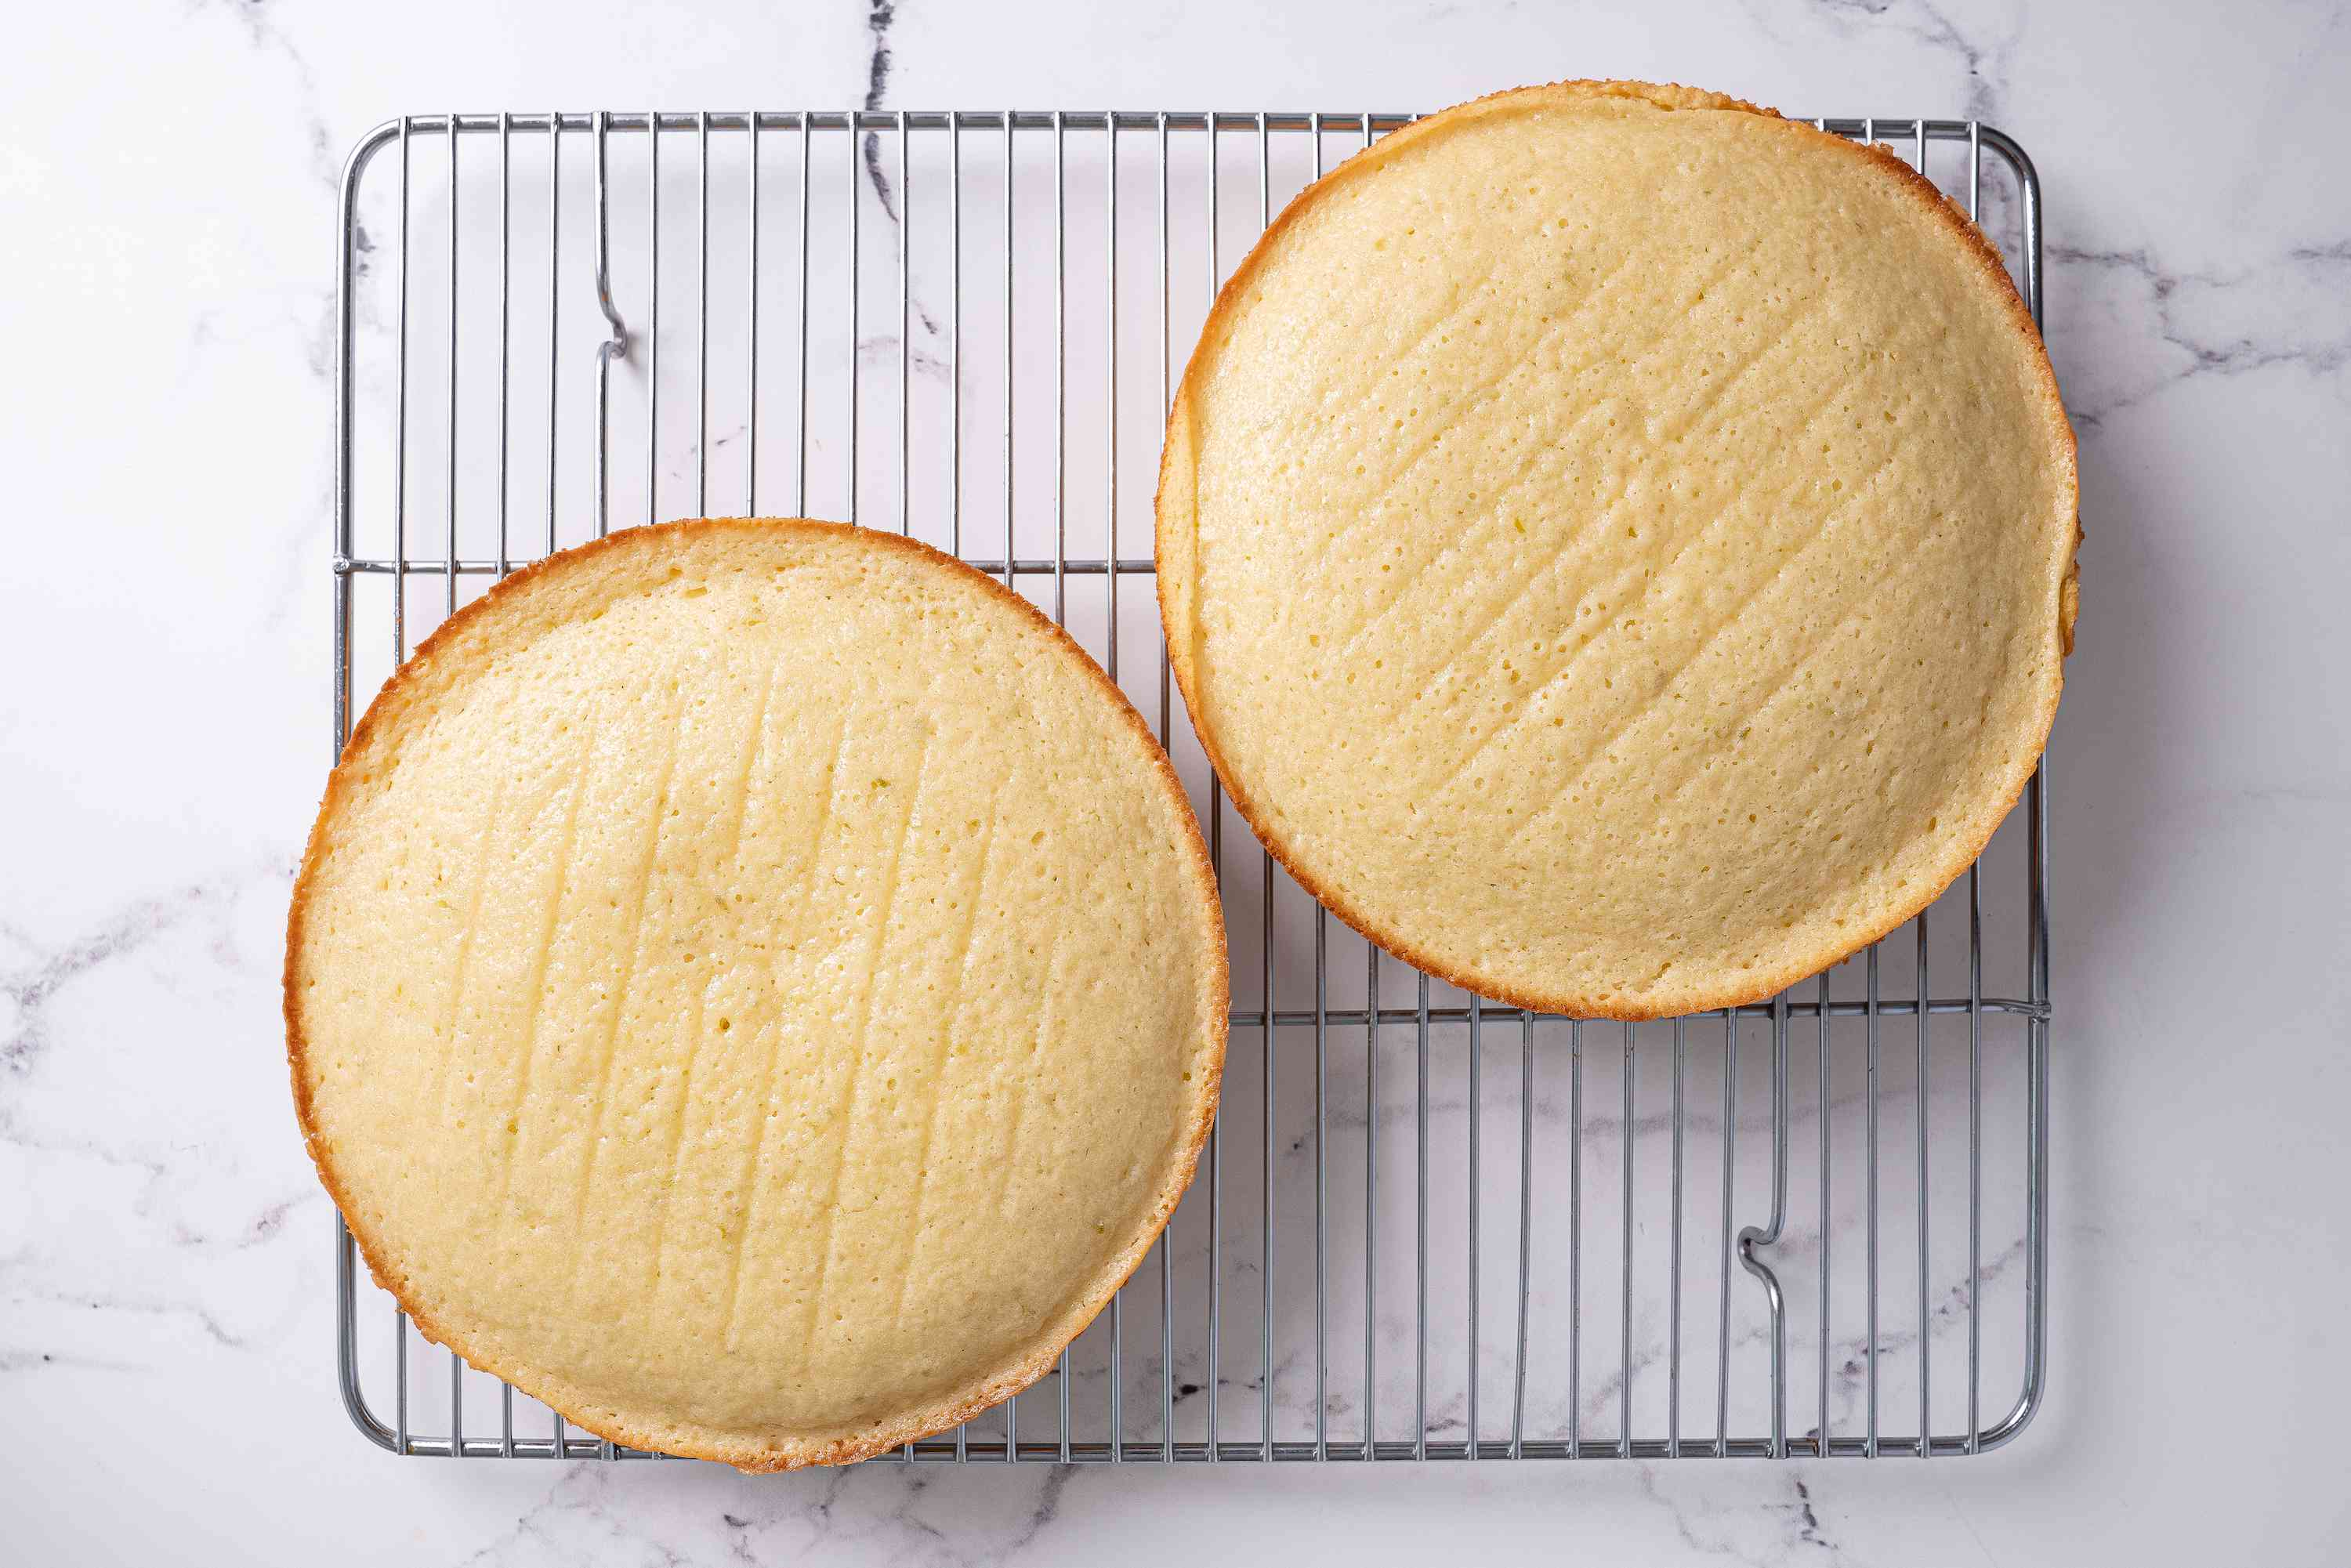 Two baked Key lime cakes cooling